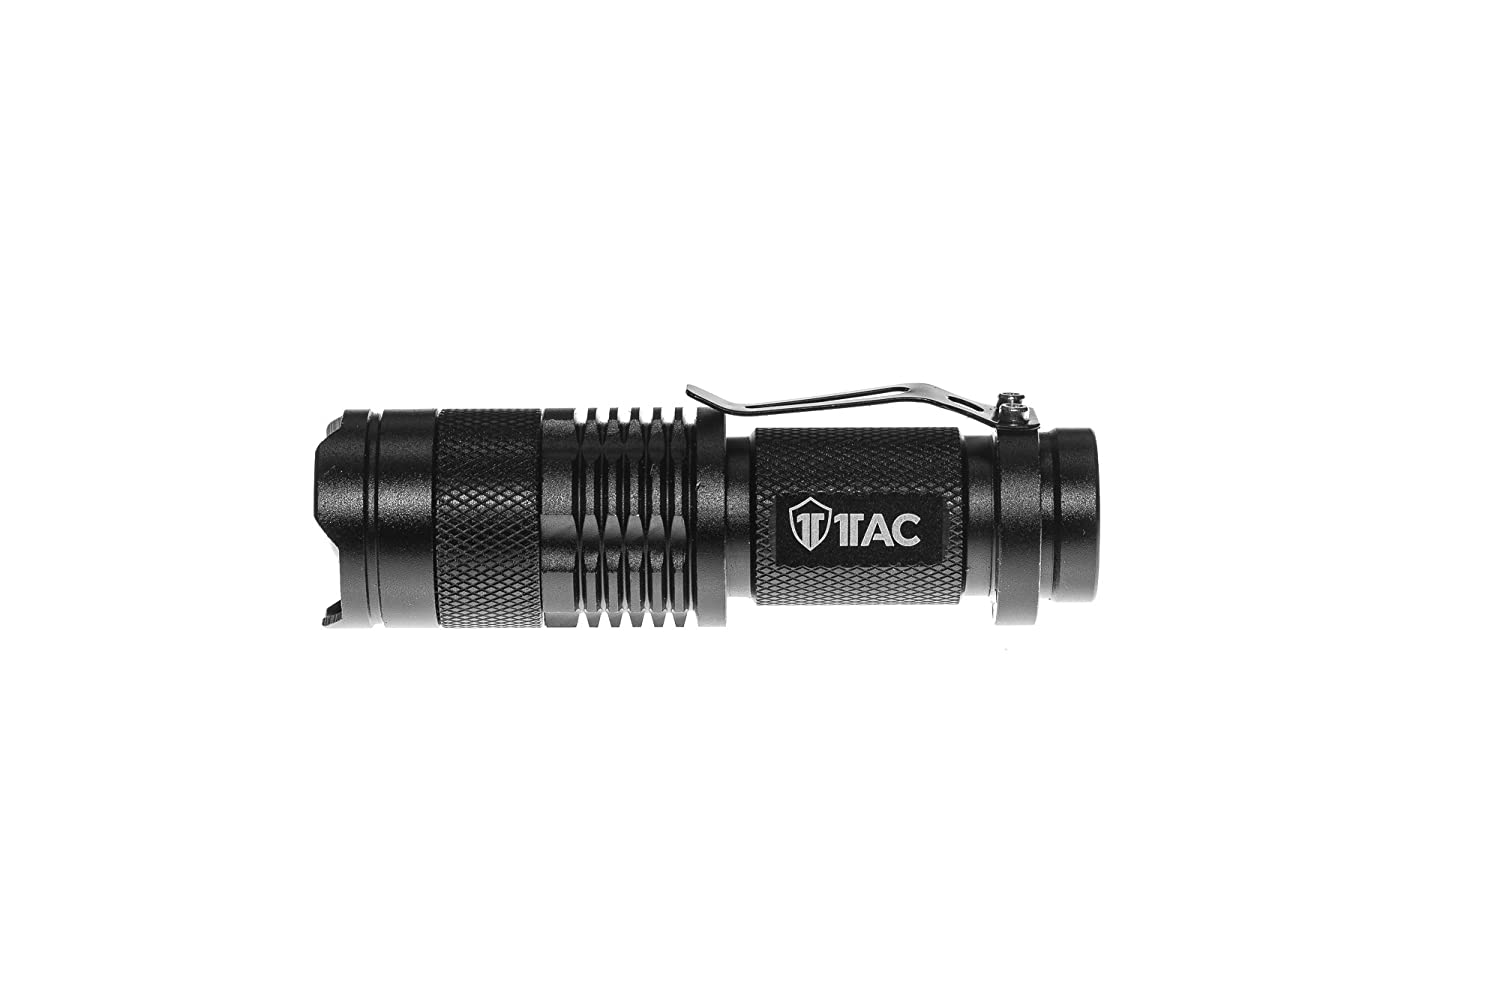 1TAC TC800 5W High Power Mini Tactical Flashlight with CREE XPE LED | 320 Lumens, Zoom, 3 Light Modes, Ultra Bright and Waterproof